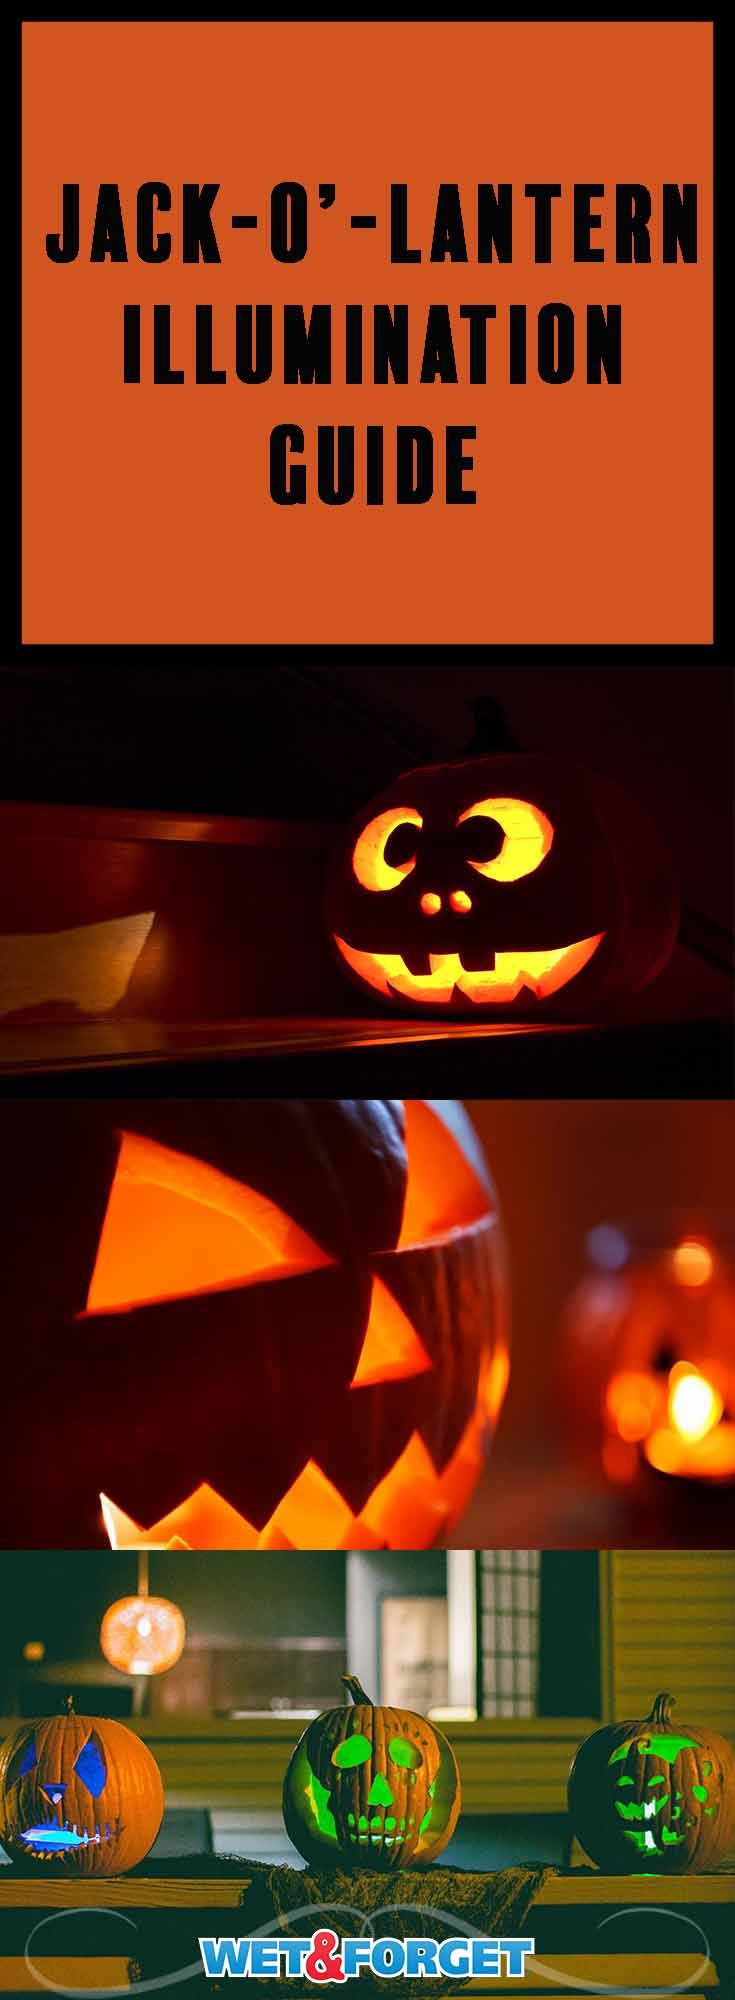 Picking out the right type of light for your jack-o'-lantern can be tough. Choose the right option for your pumpkin with our easy to follow guide.